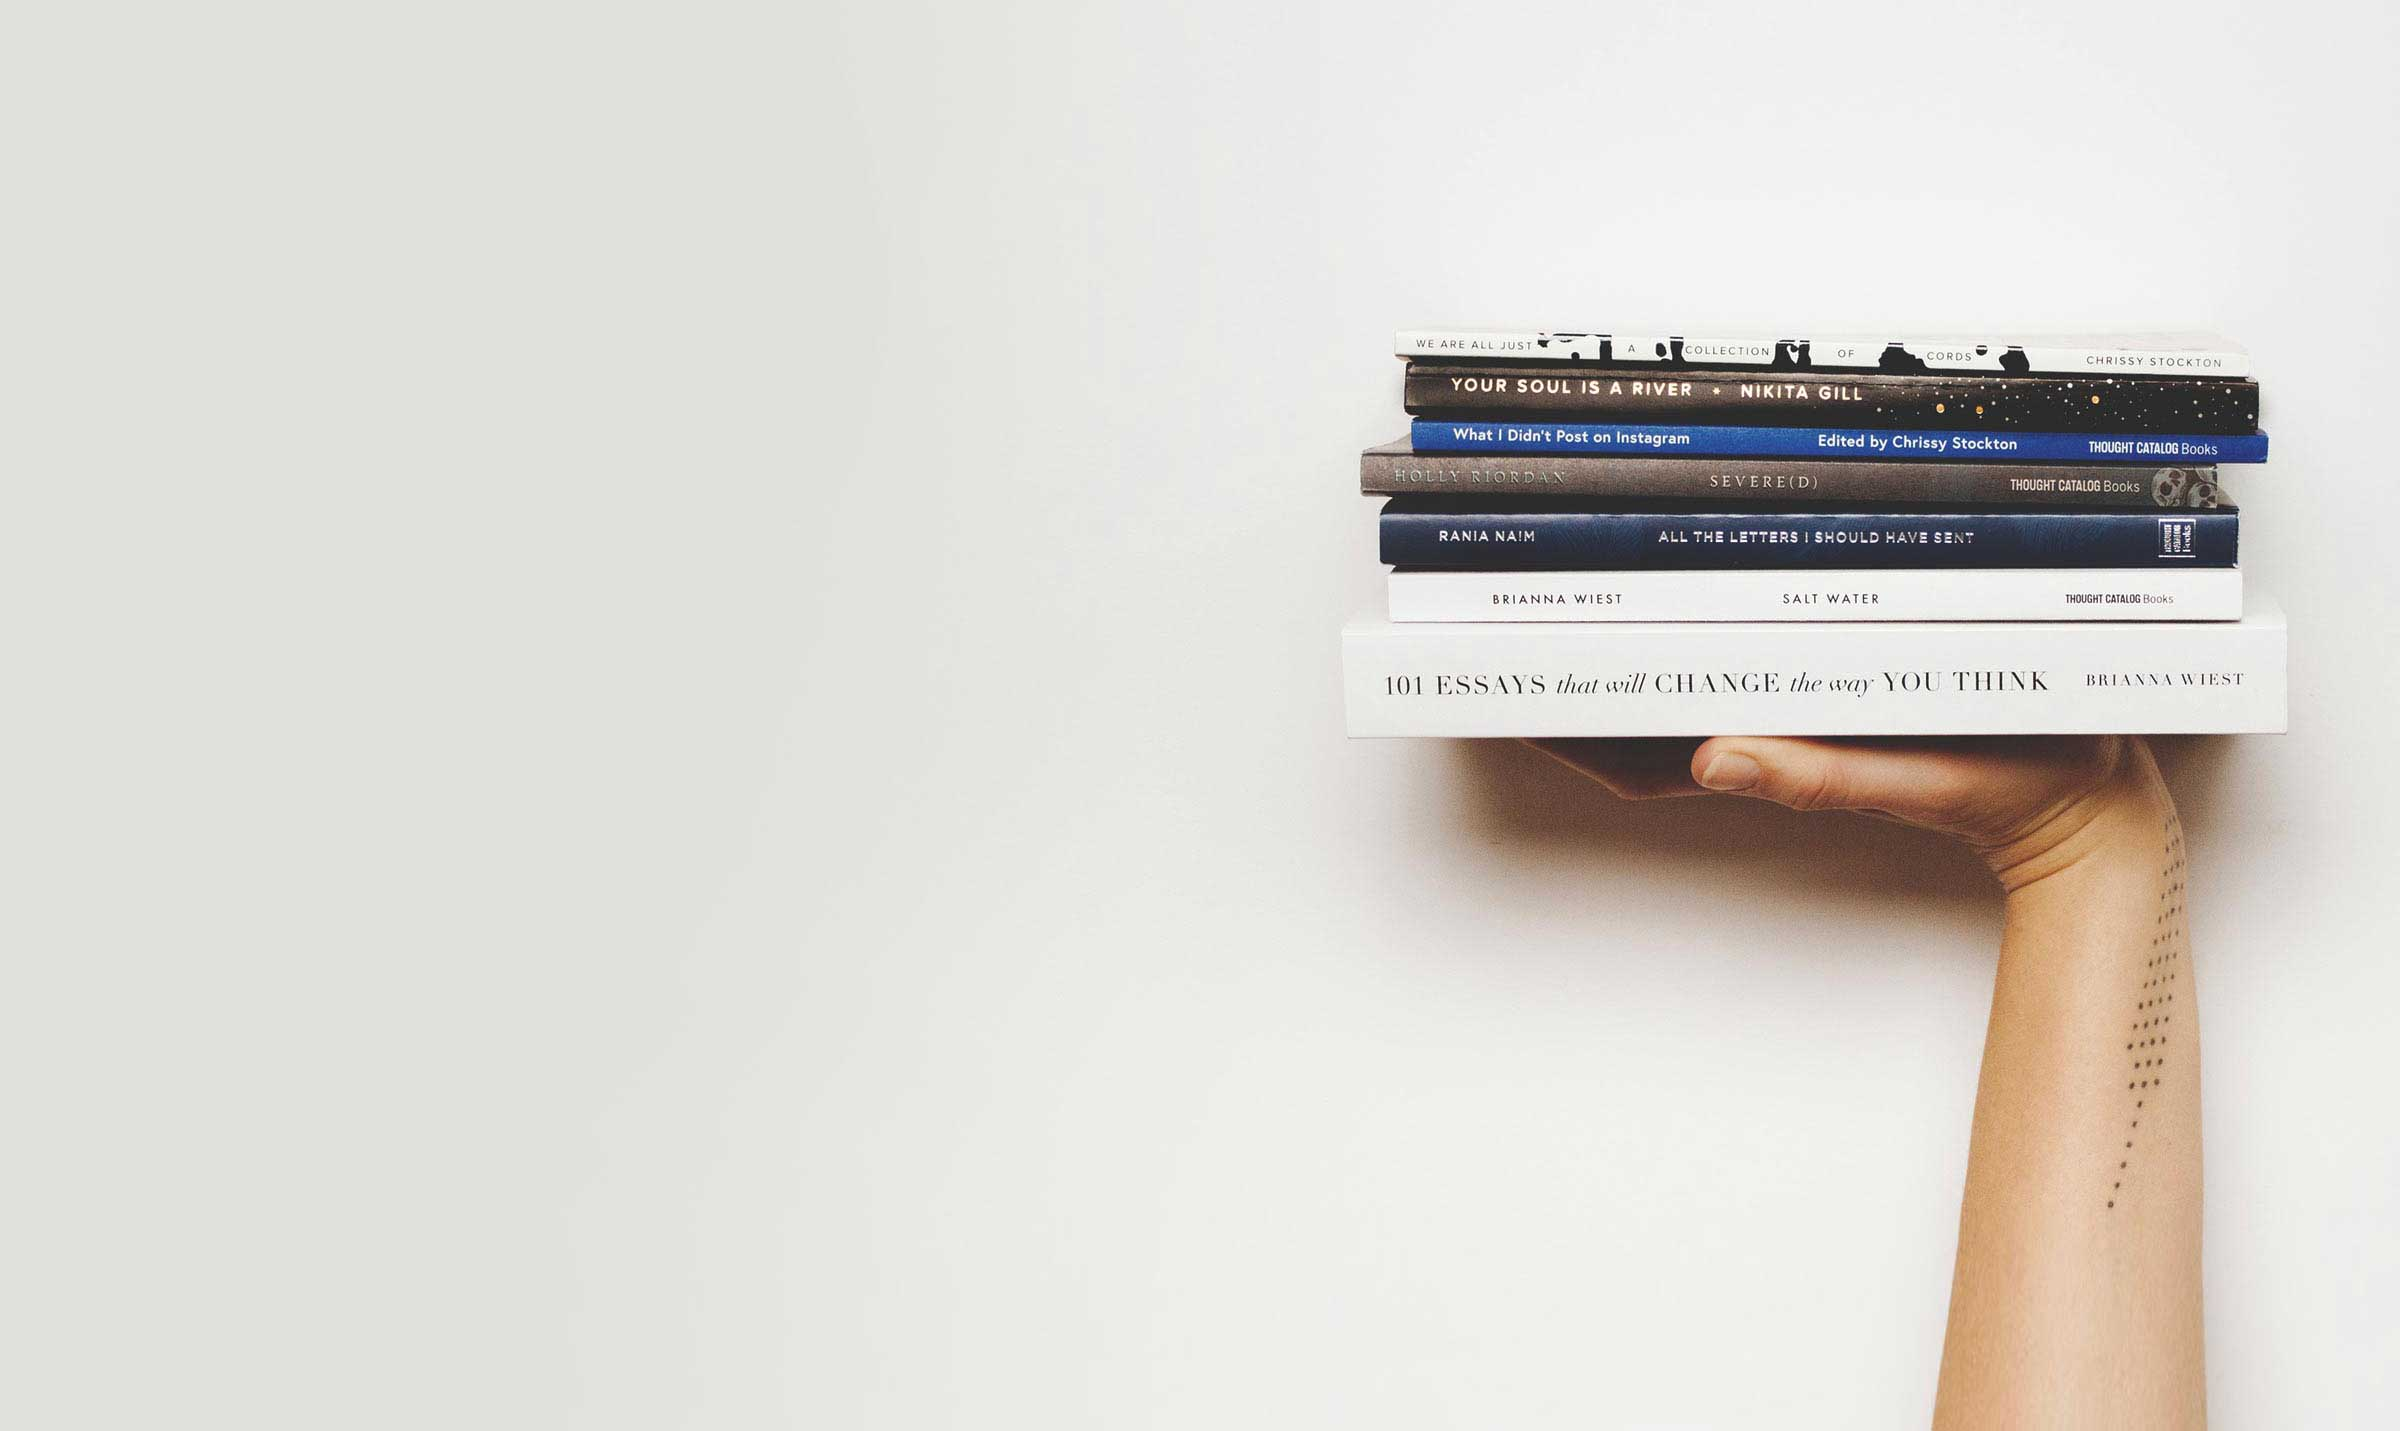 Tablo masthead holding books